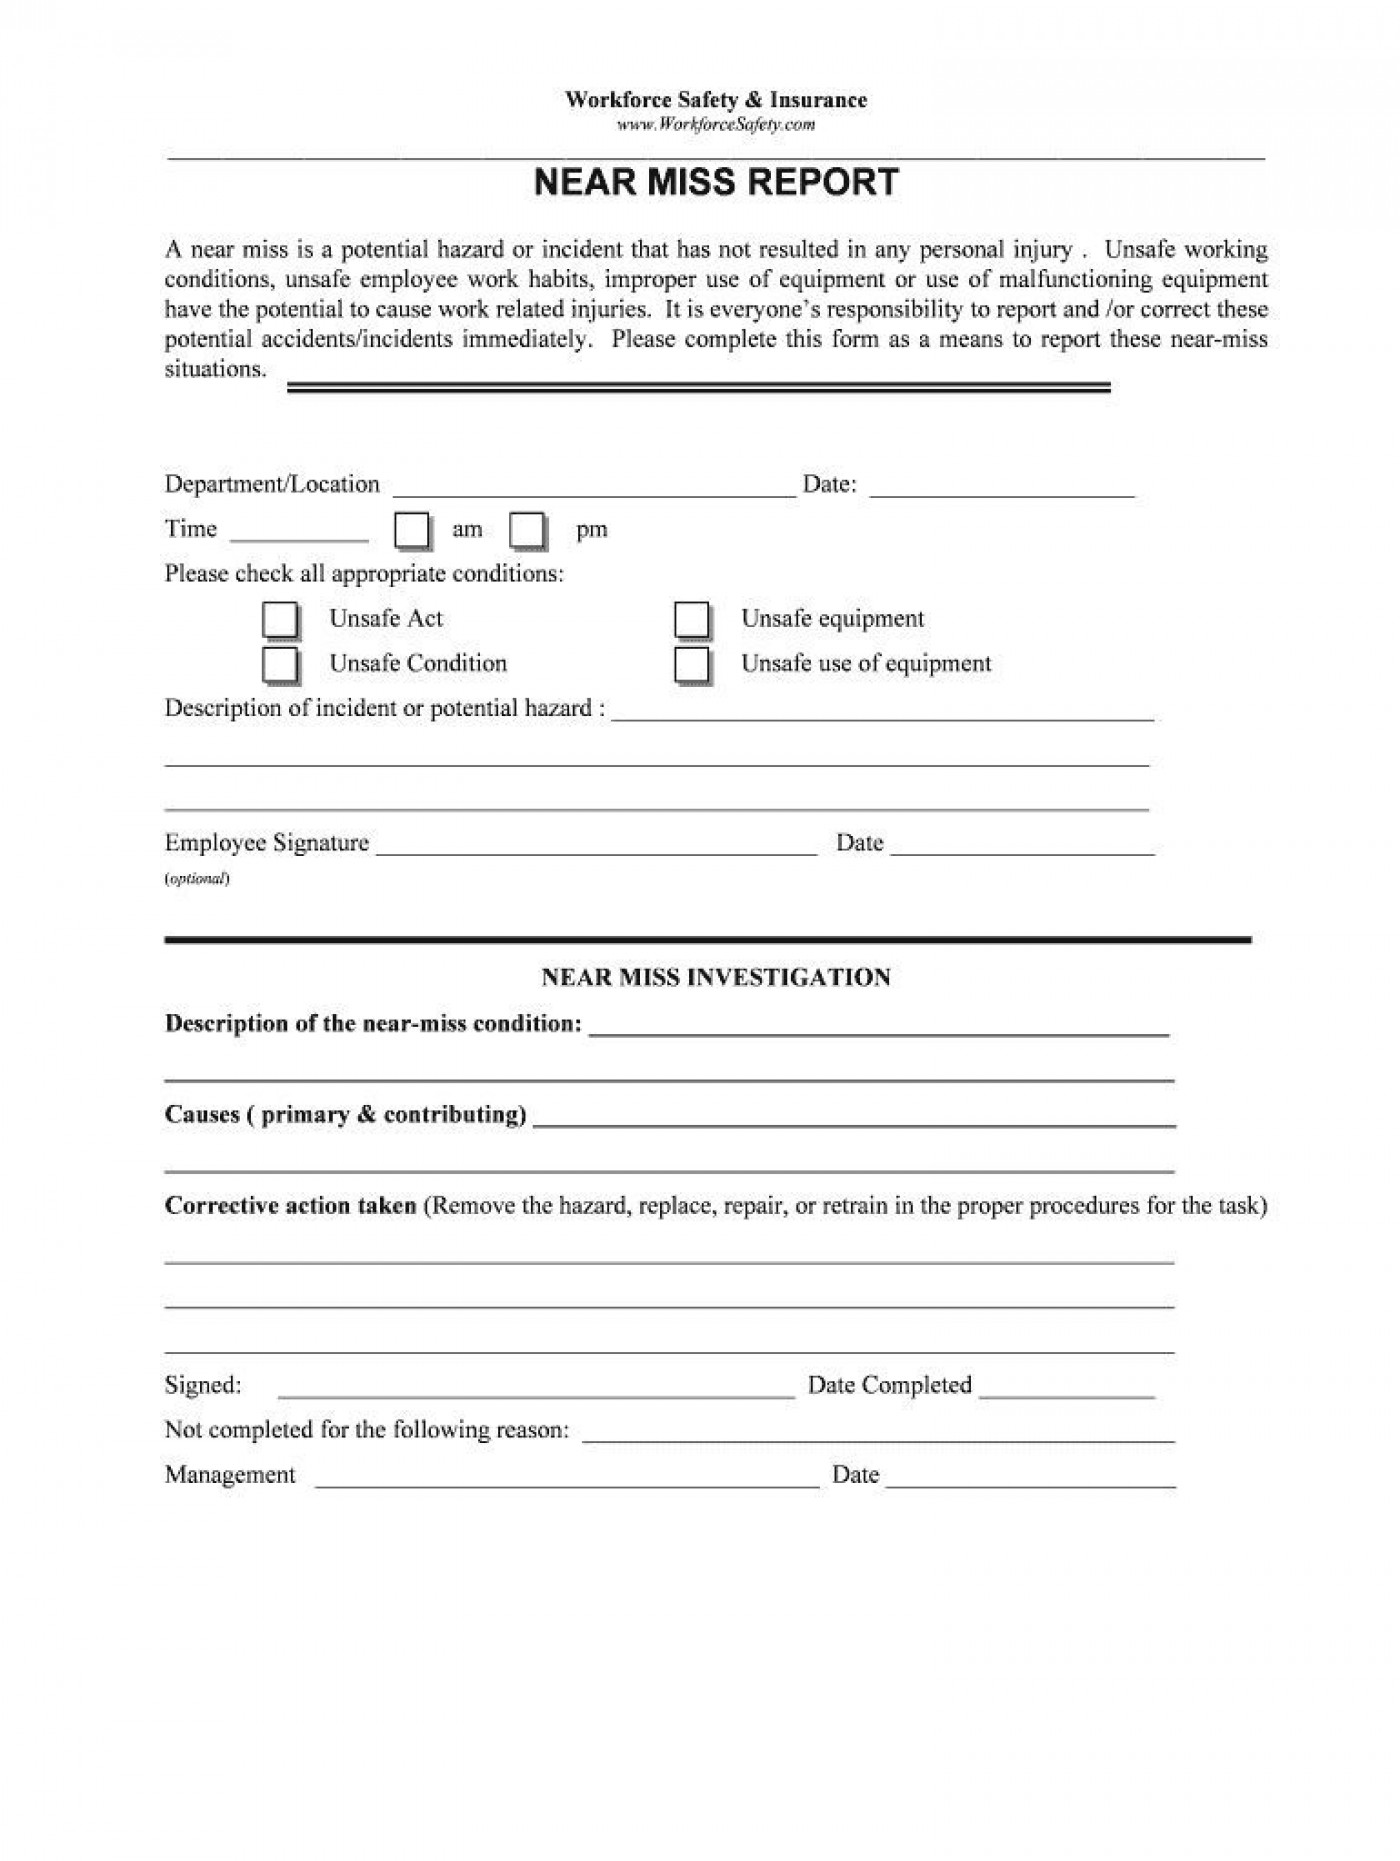 000 Frightening Workplace Incident Report Form Ontario Photo  Violence1400